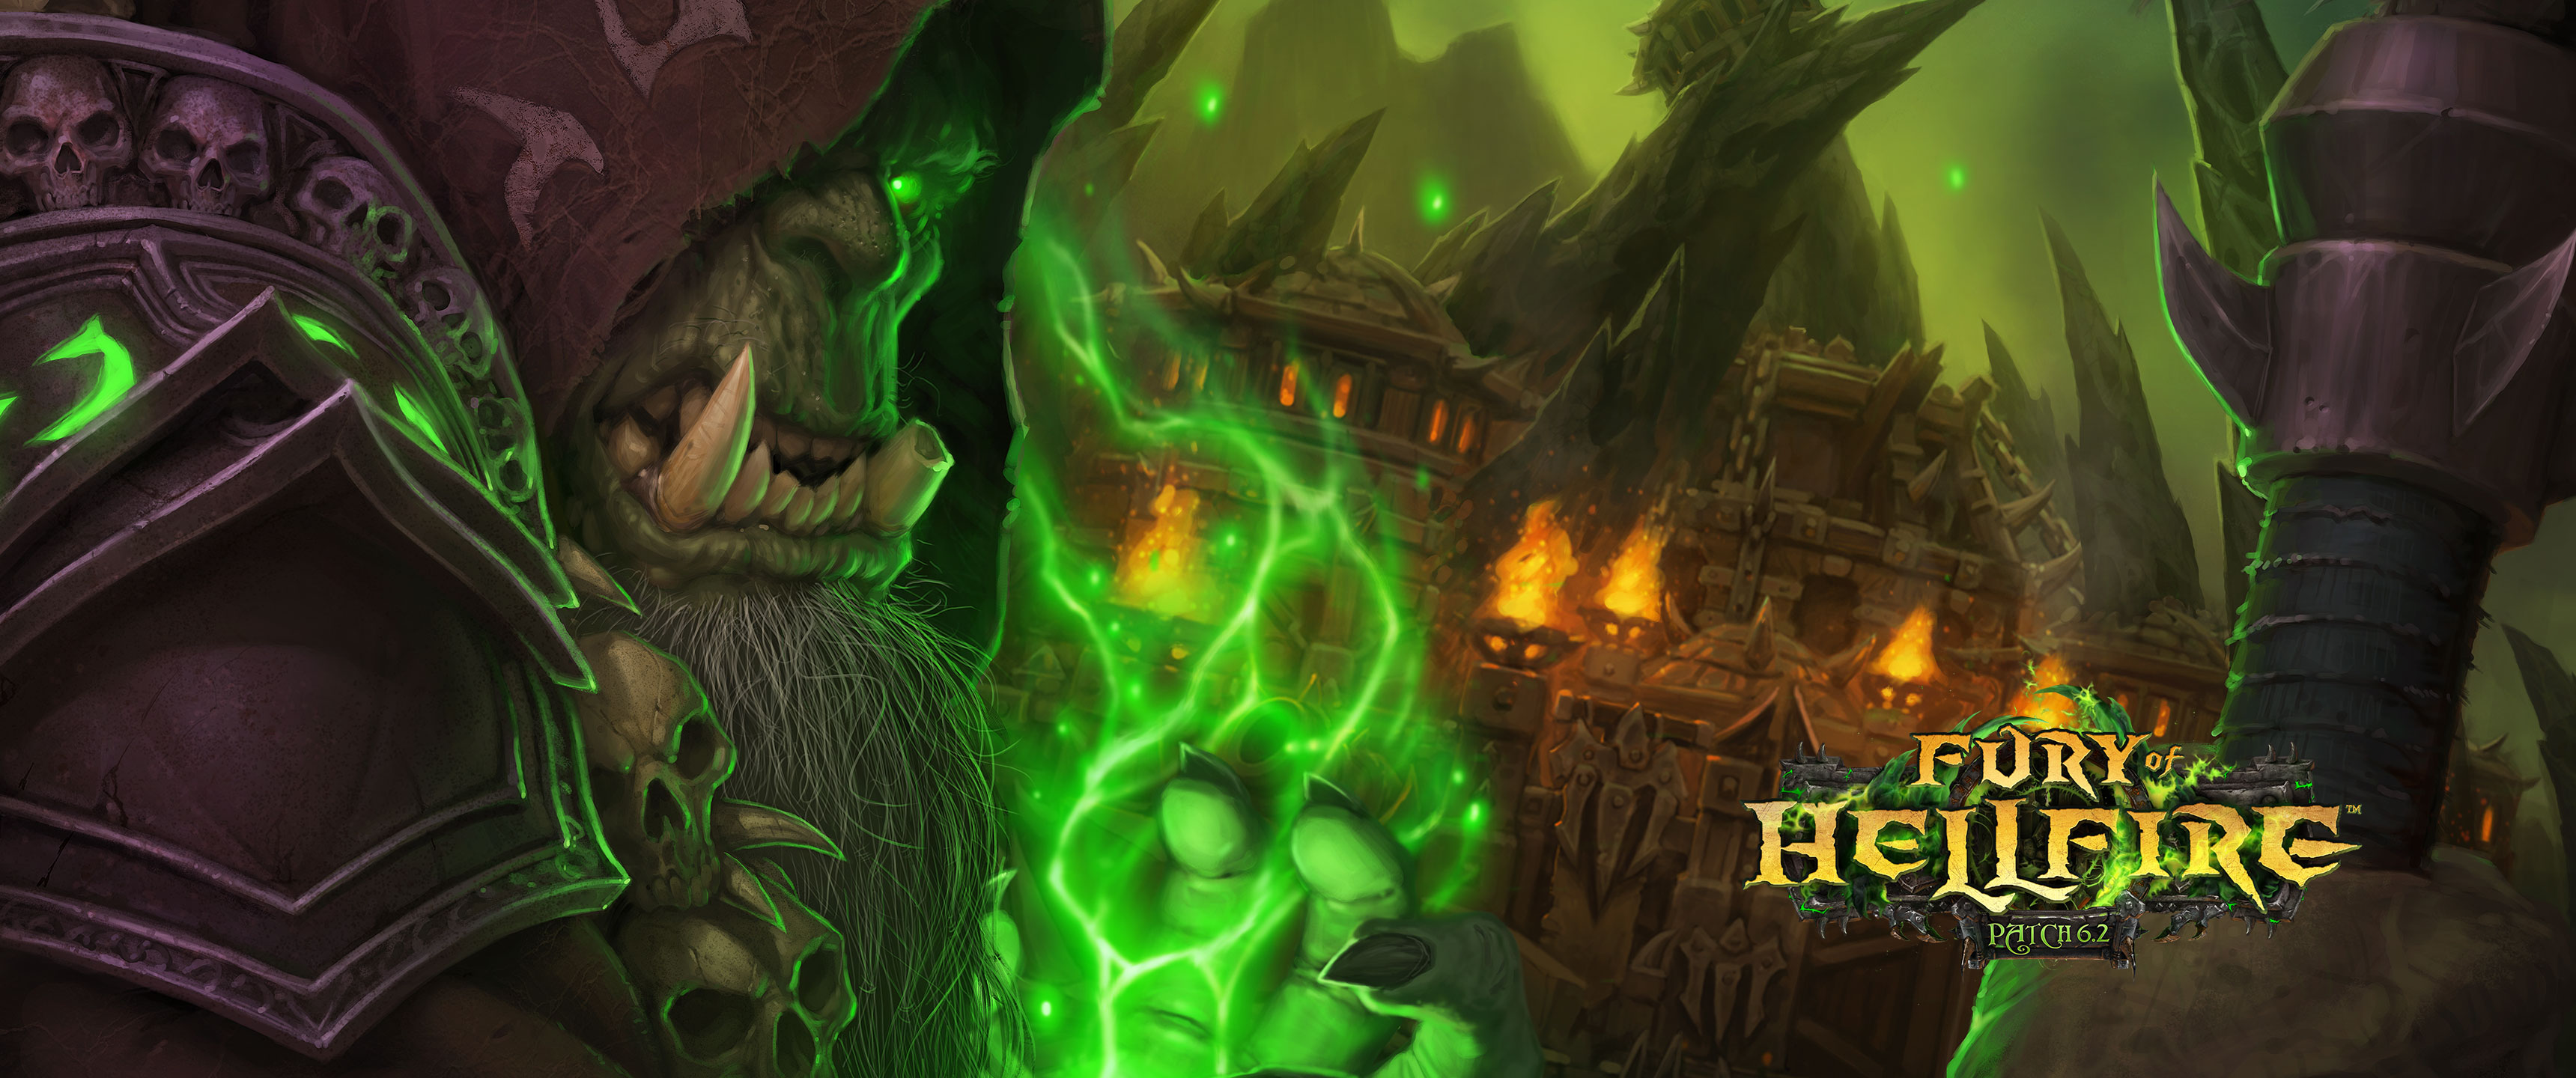 Jungle Wallpaper World Of Warcraft: Patch 6.2: Fury Of Hellfire Wallpapers Available